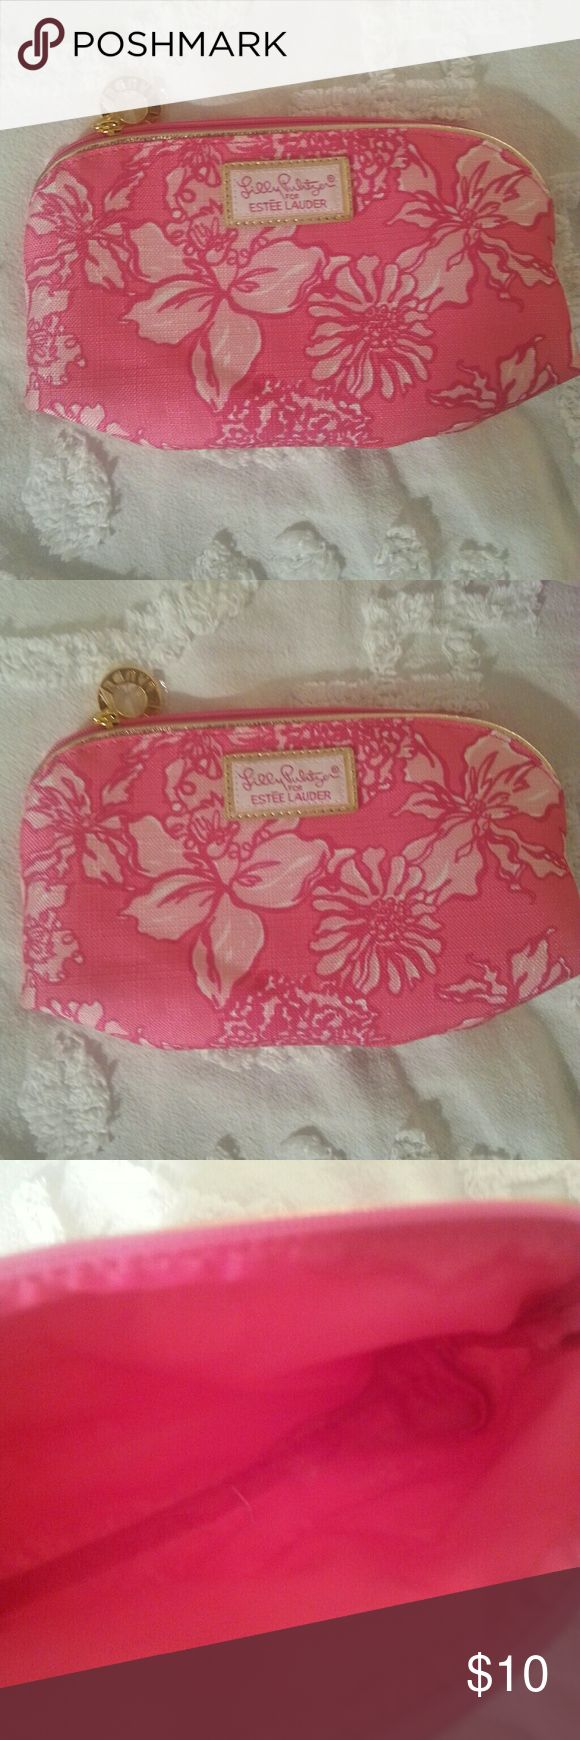 🆕 Lilly Pulitzer Cosmetic Bag Lilly Pulitzer and Estee Lauder make up bag in excellent condition Lilly Pulitzer Bags Cosmetic Bags & Cases